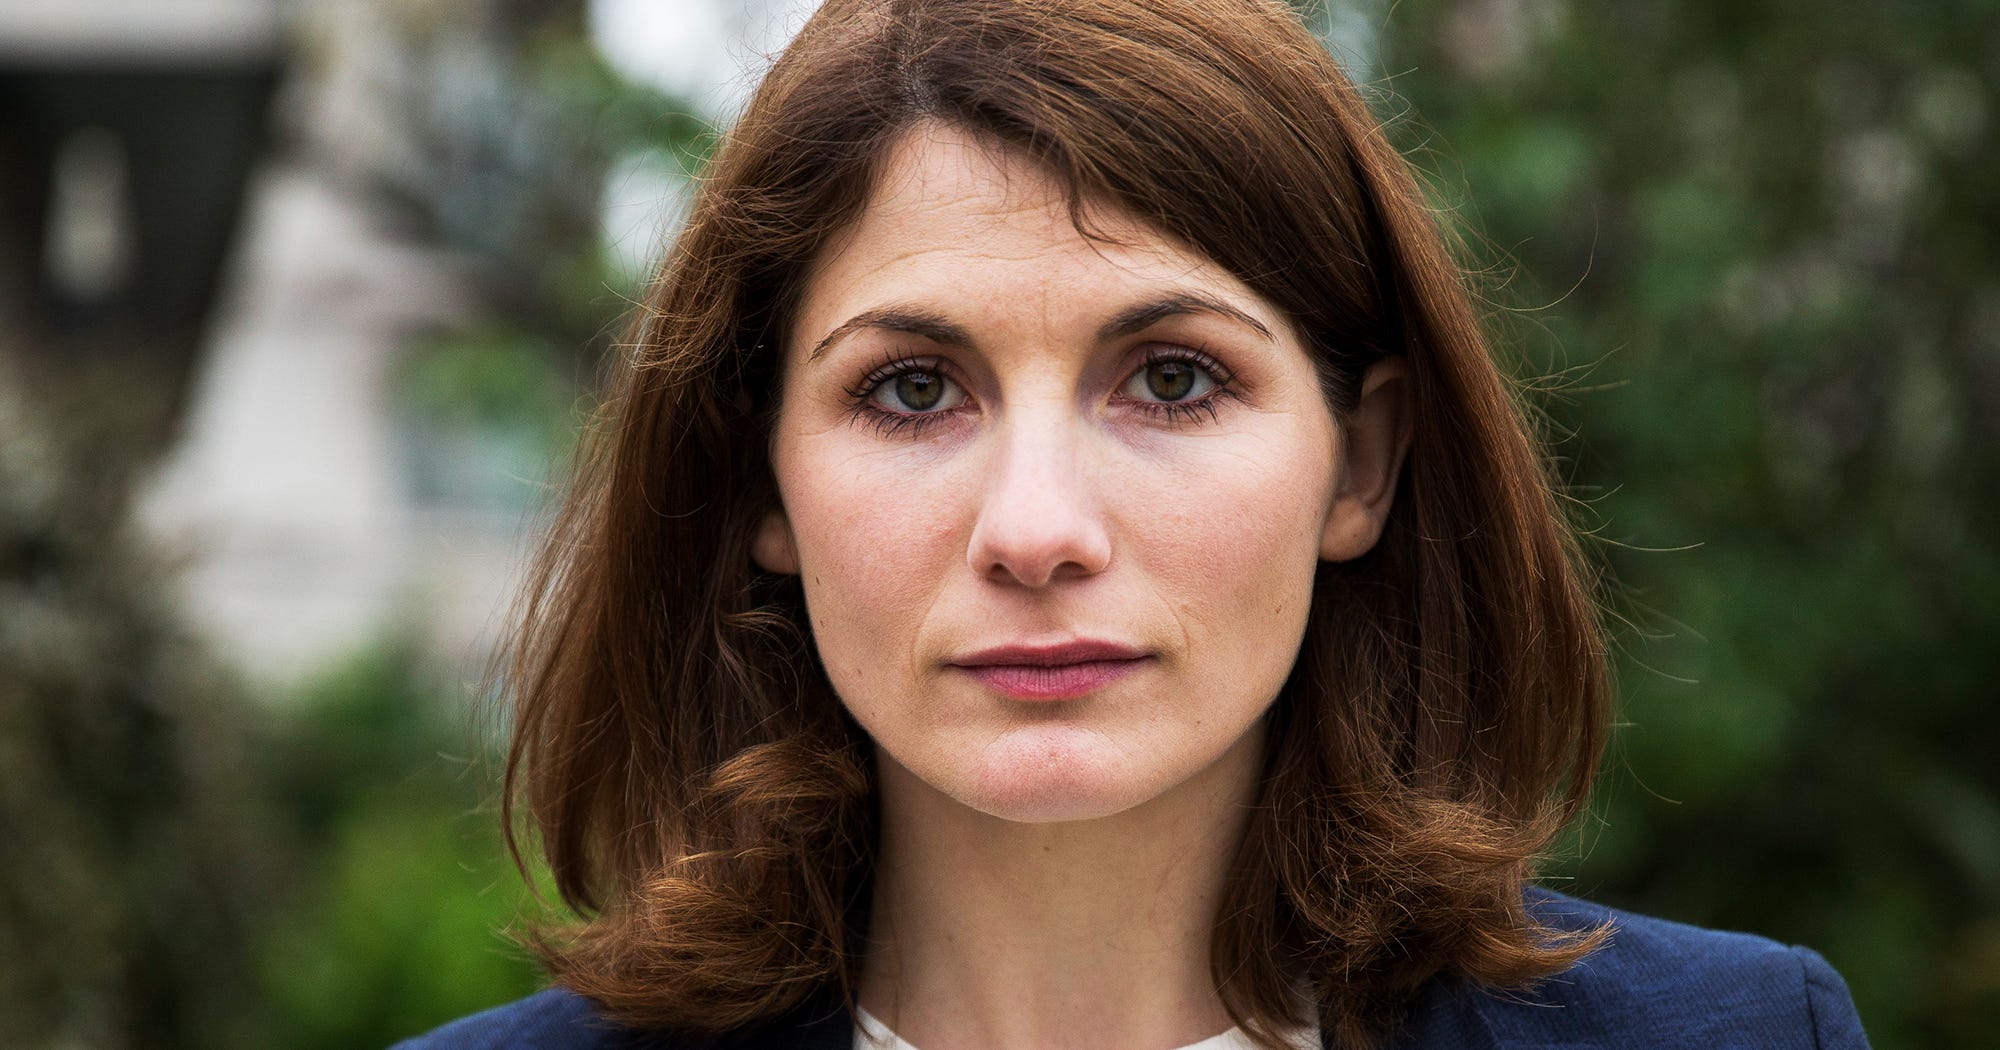 Jodie Whittaker Is the New 13th Doctor Who Time Lady